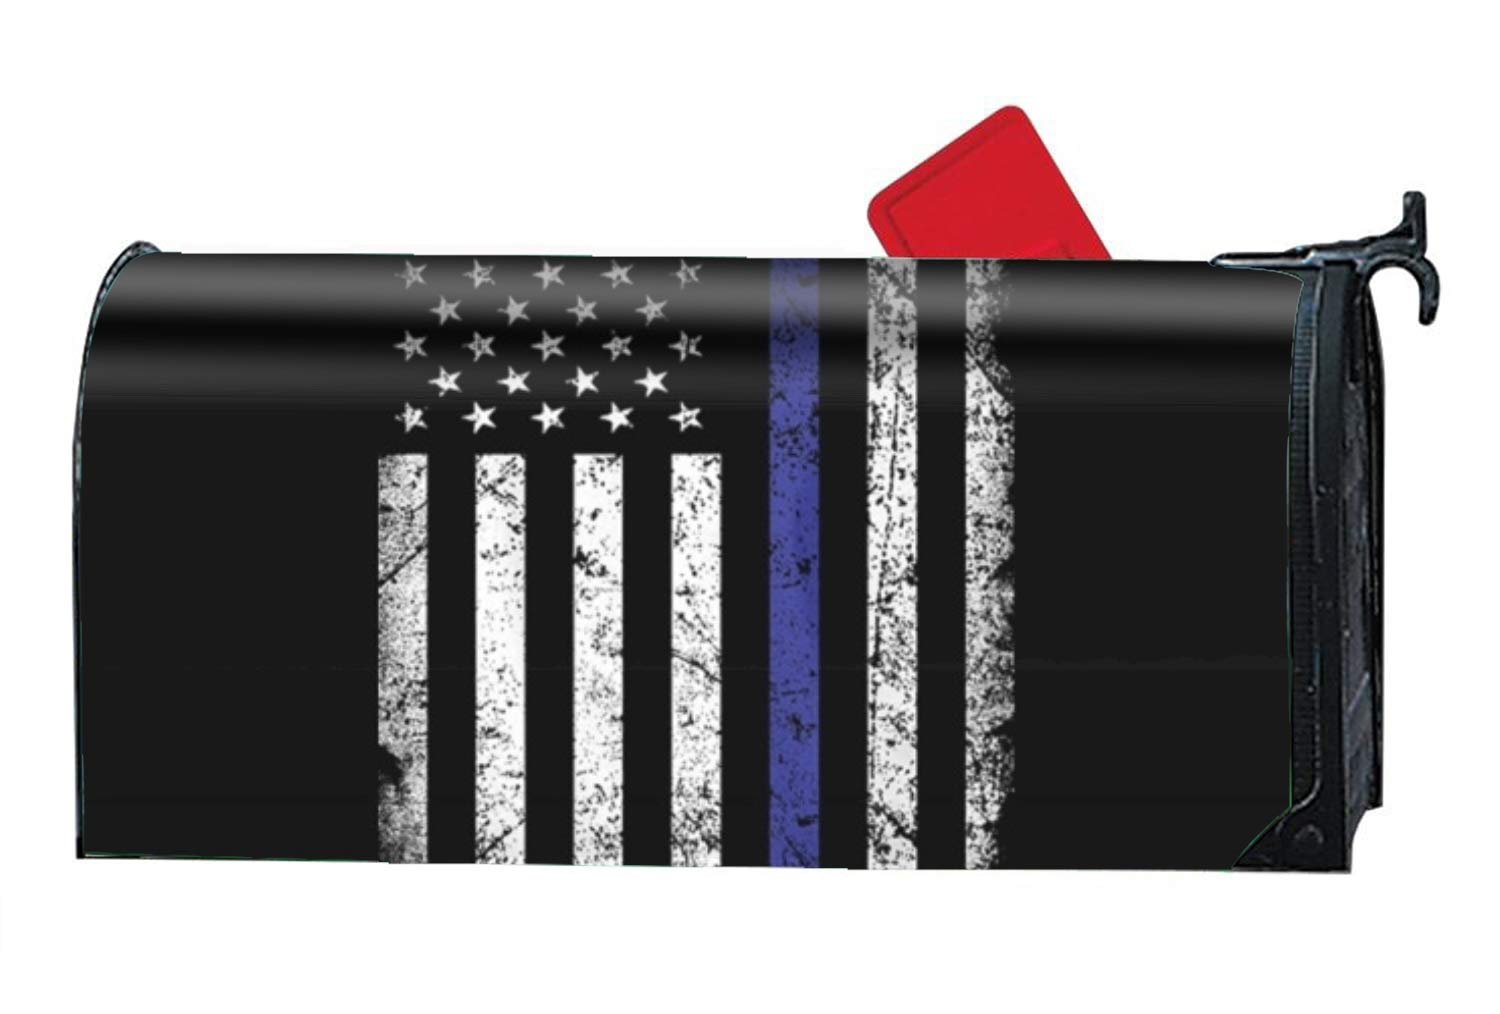 WilBstrn Thin Blue Line Flag Printed Mailbox Covers Magnetic Mailbox Makeover